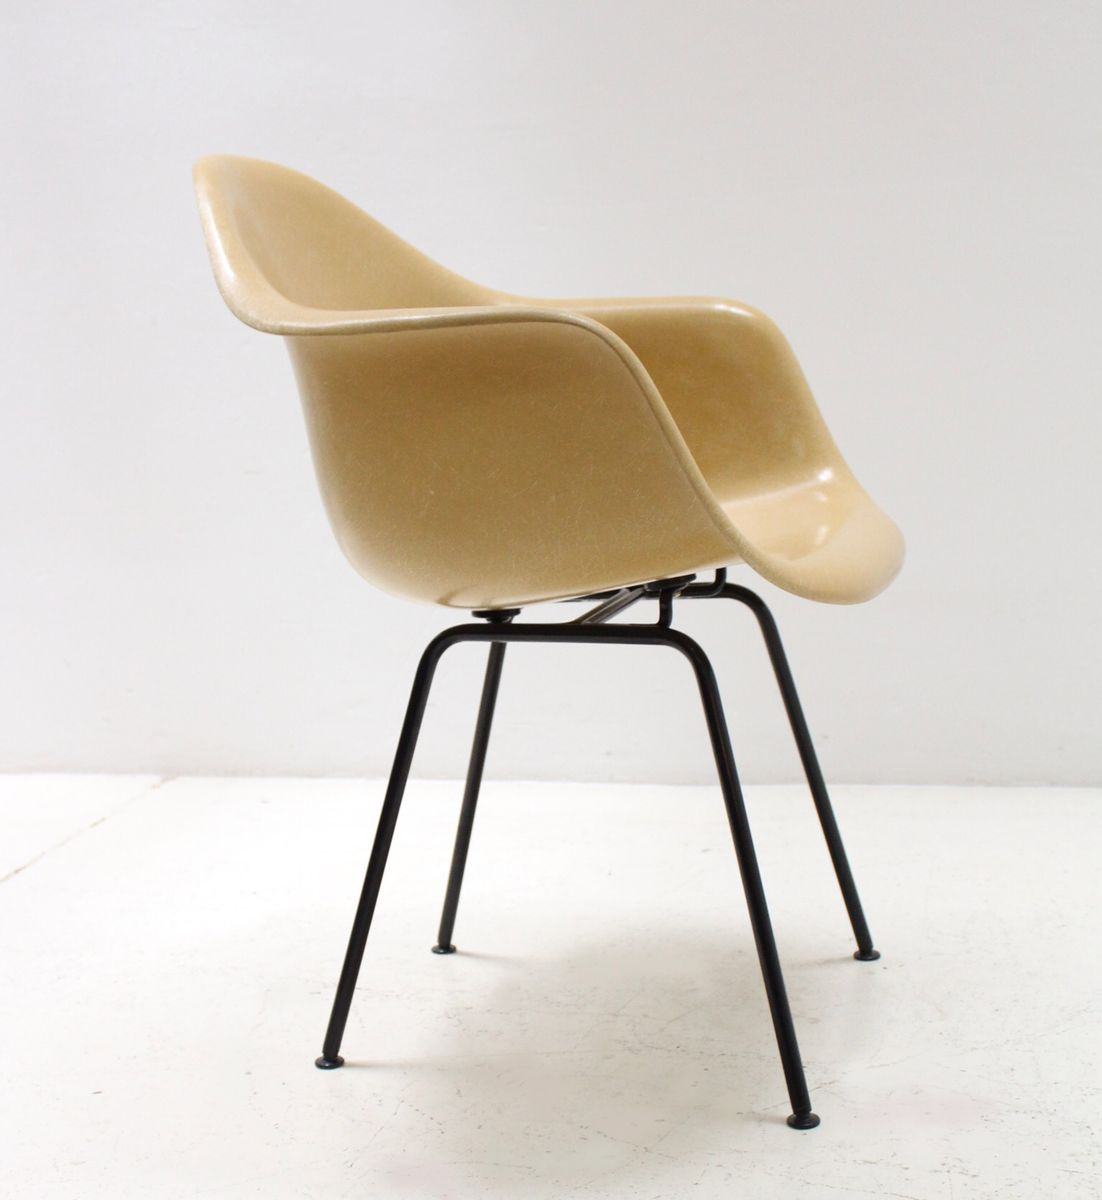 Mustard Fiberglass Armchair By Charles U0026 Ray Eames For Herman Miller, 1960s